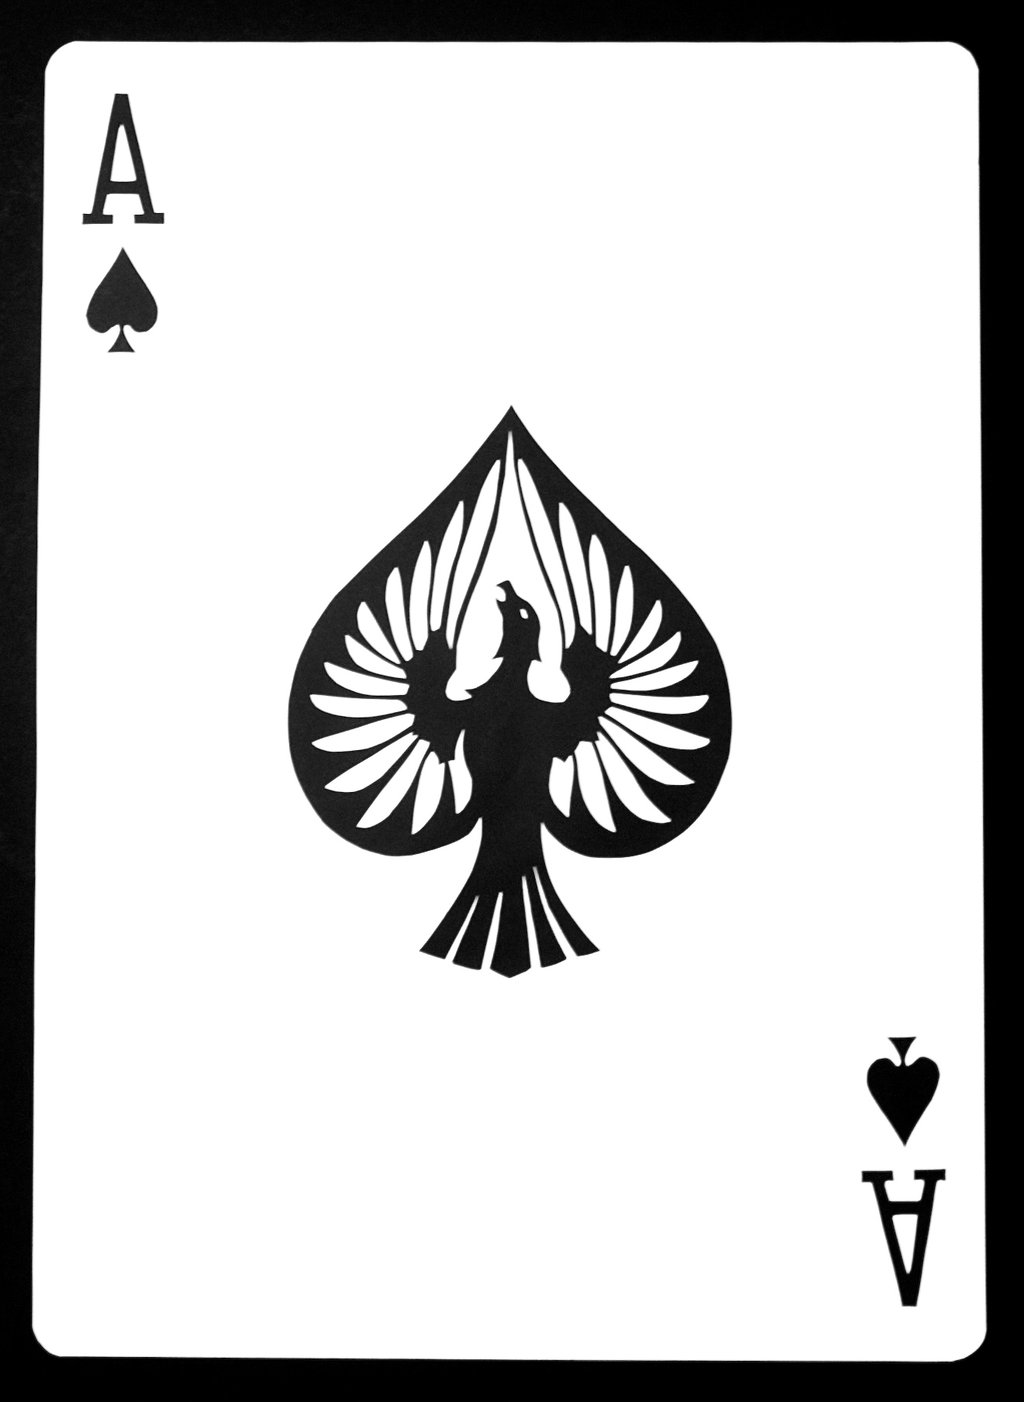 Ace Of Pentacles Images On Pinterest: The Ace(TV Series)